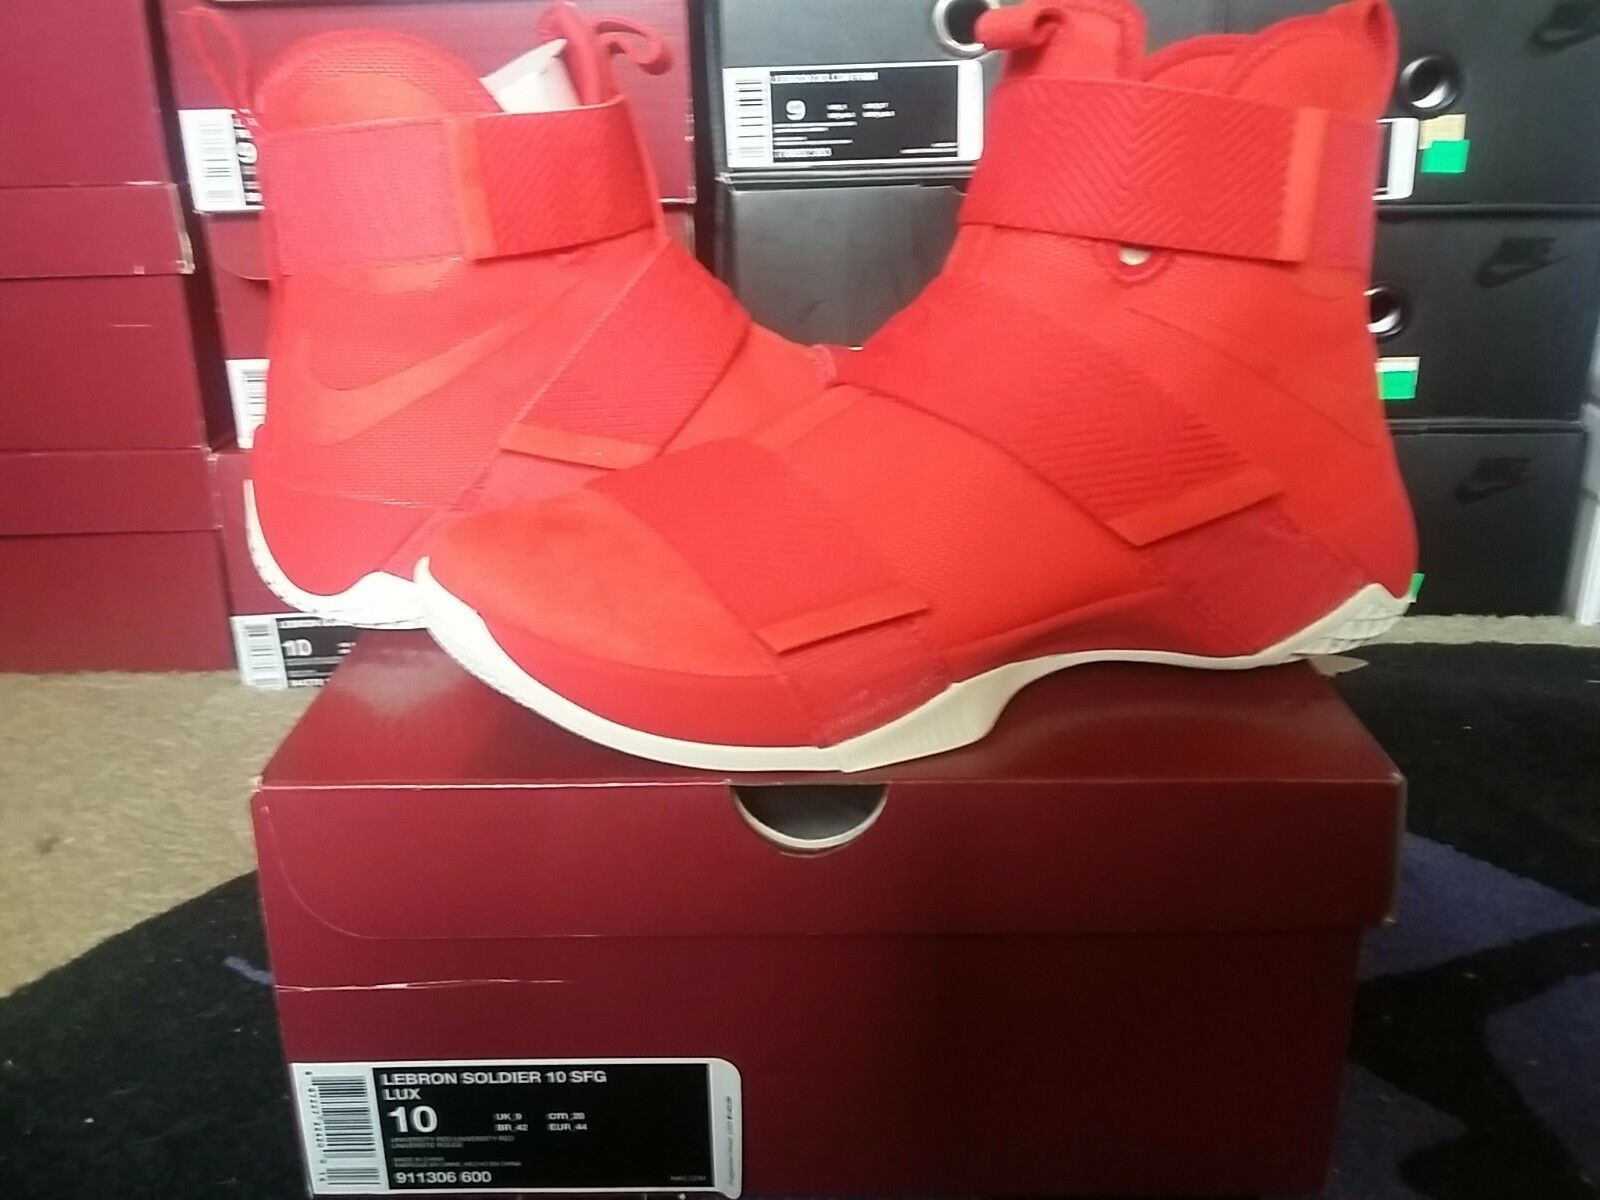 Nike Air Zoom Soldier X 10 LeBron James SFG Lux University Red OSU xi 911306 600